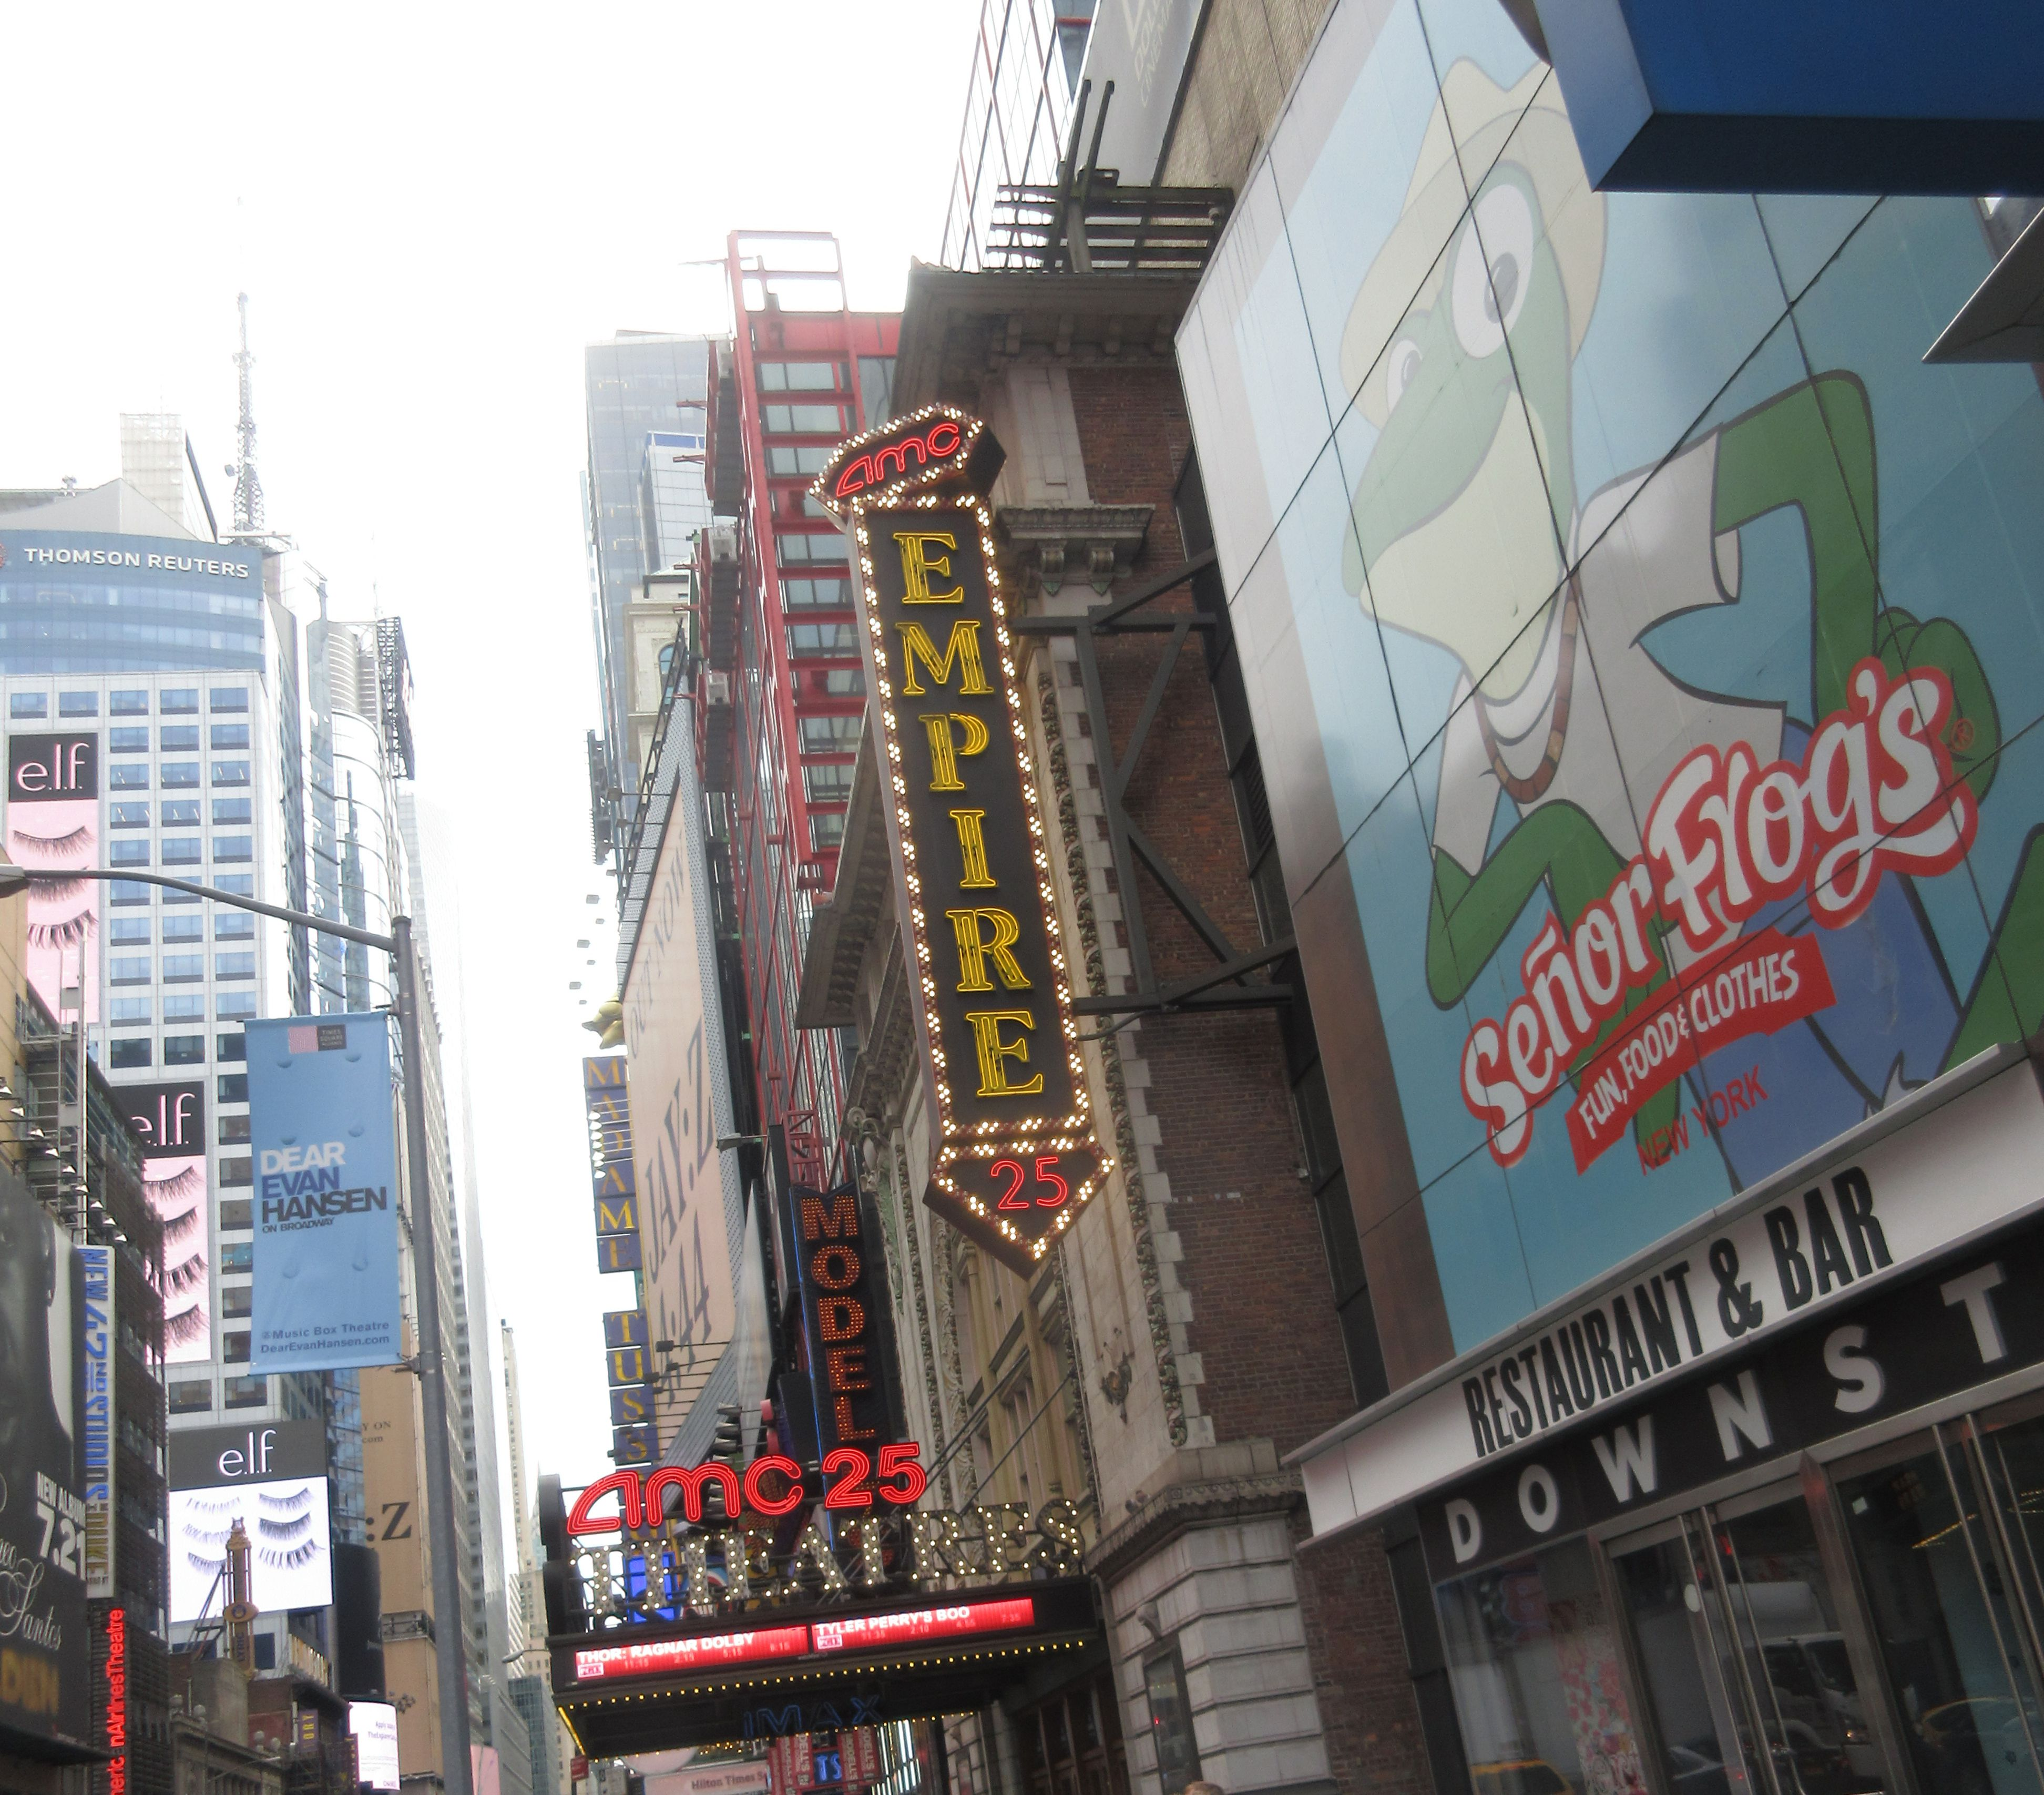 Amc 25 movie theater in times square new york city nyc